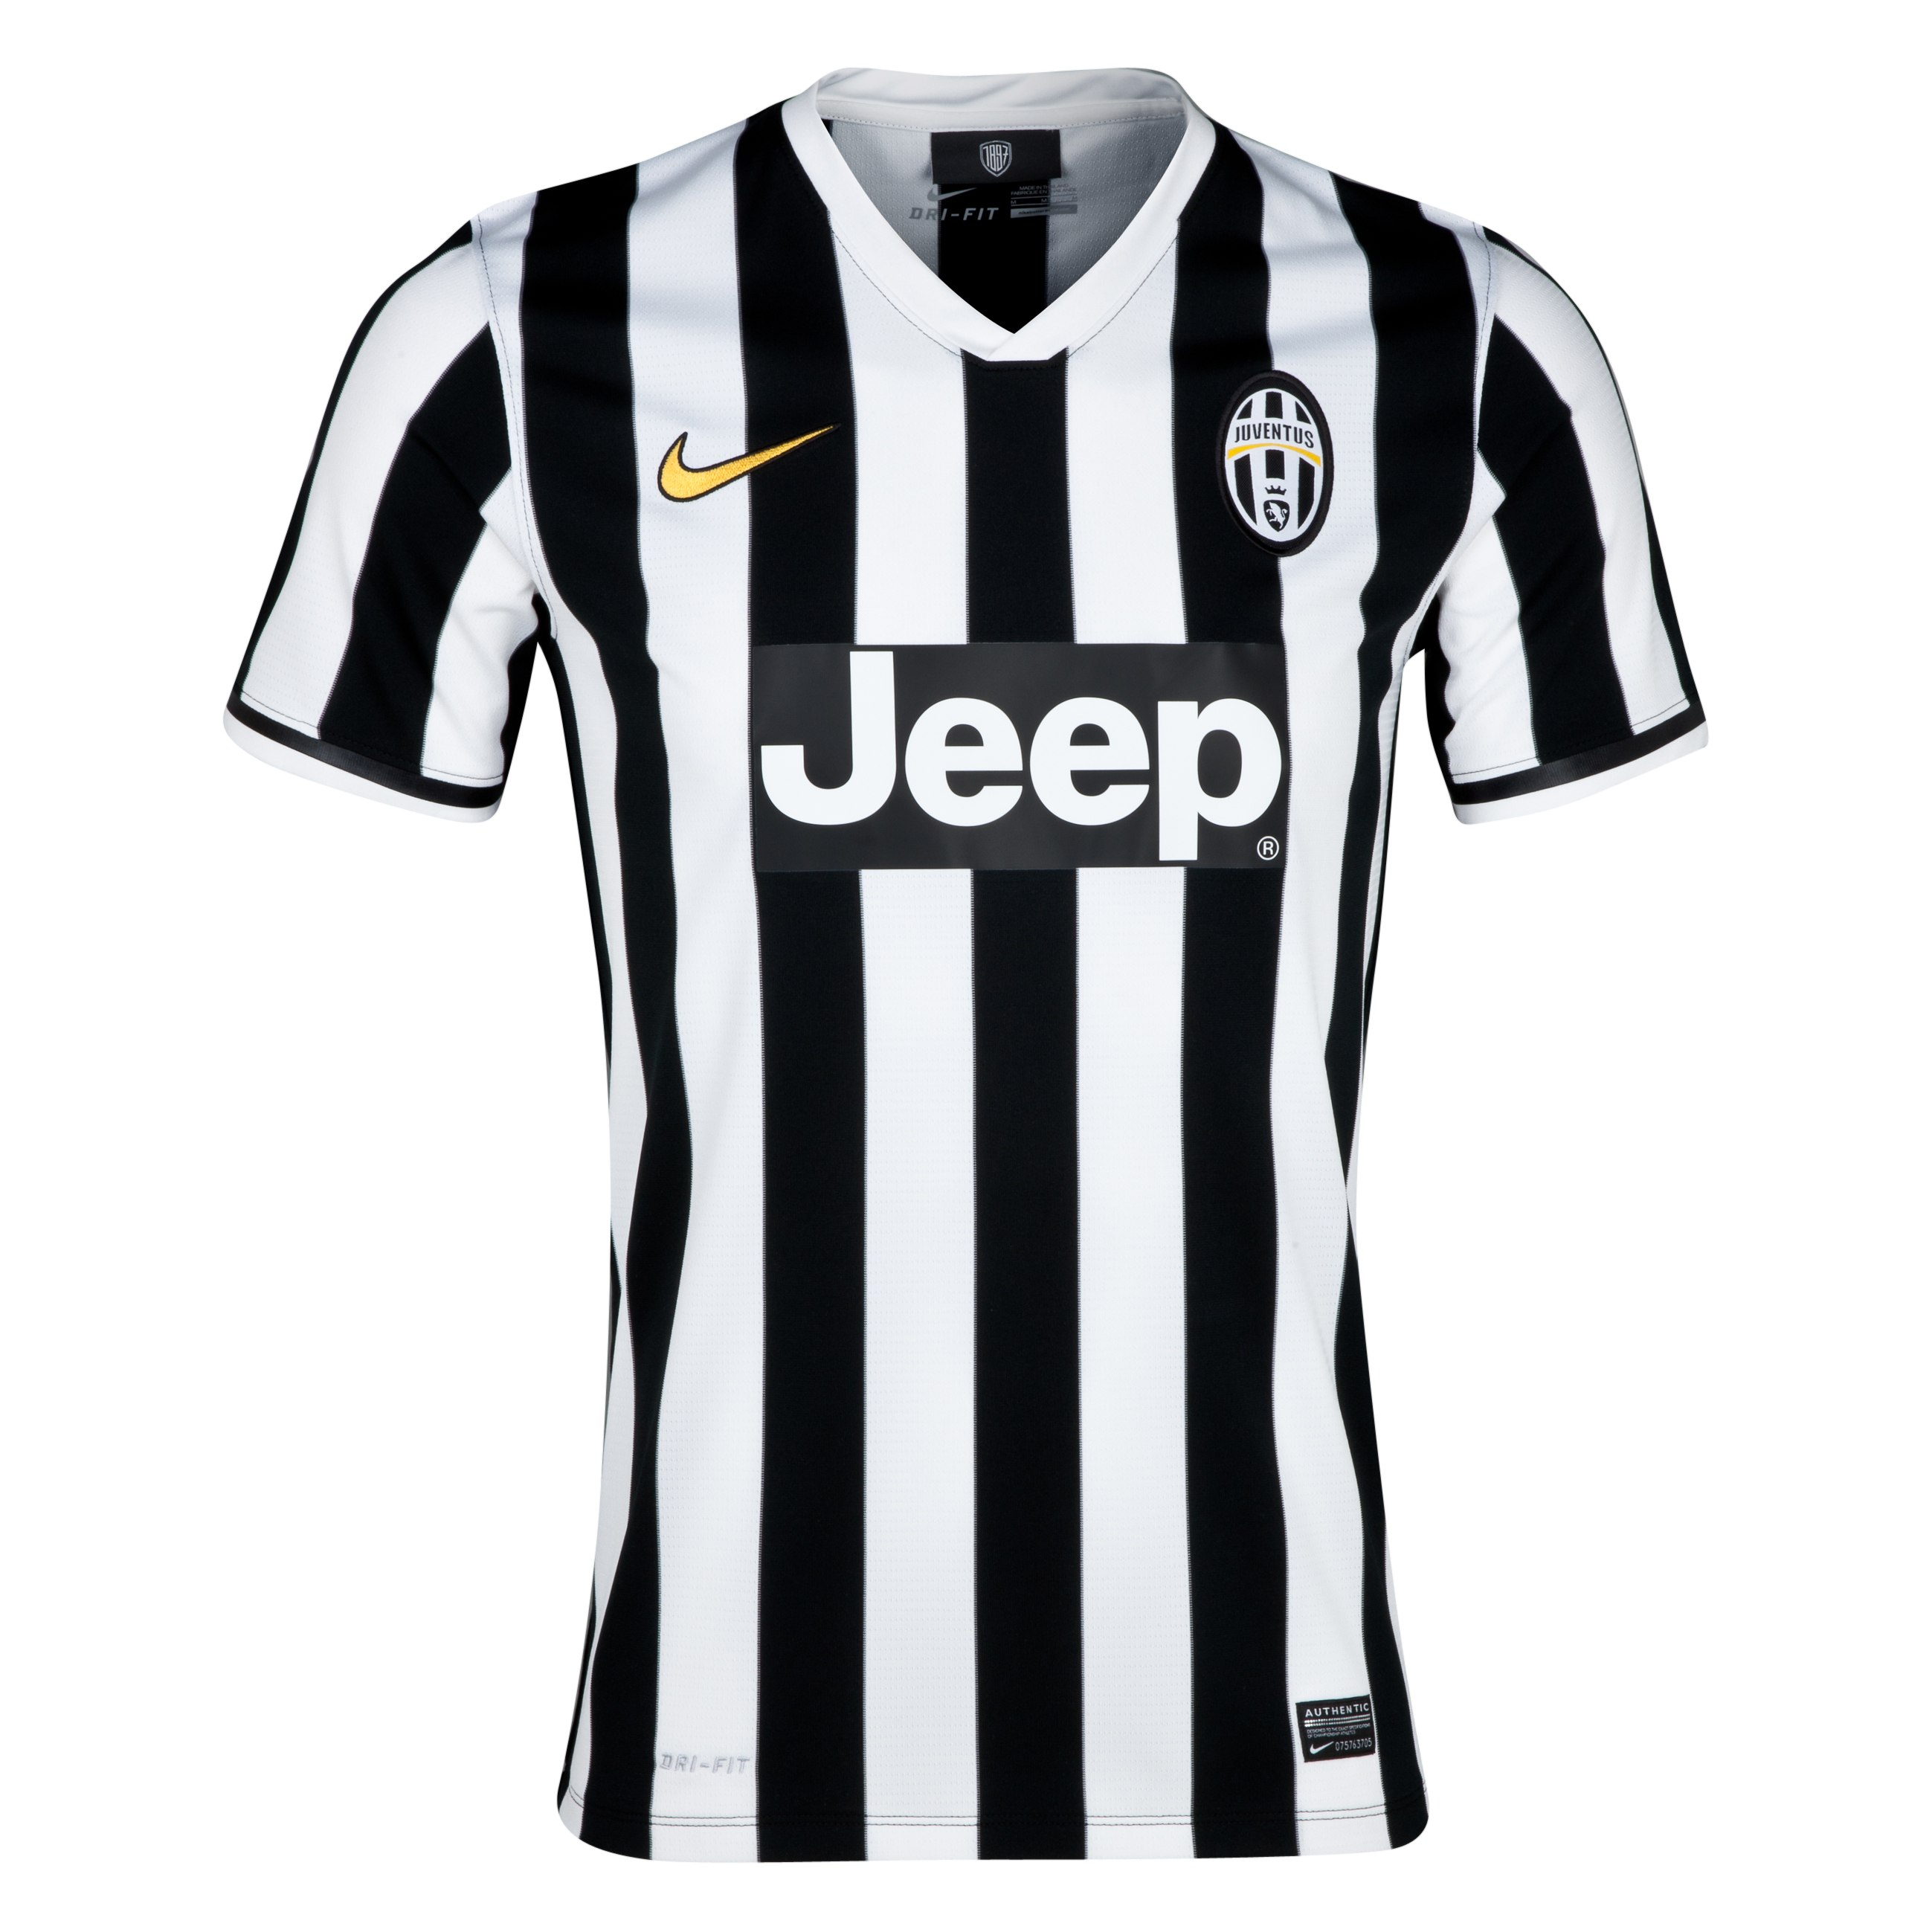 Juventus Home Shirt 2013/14